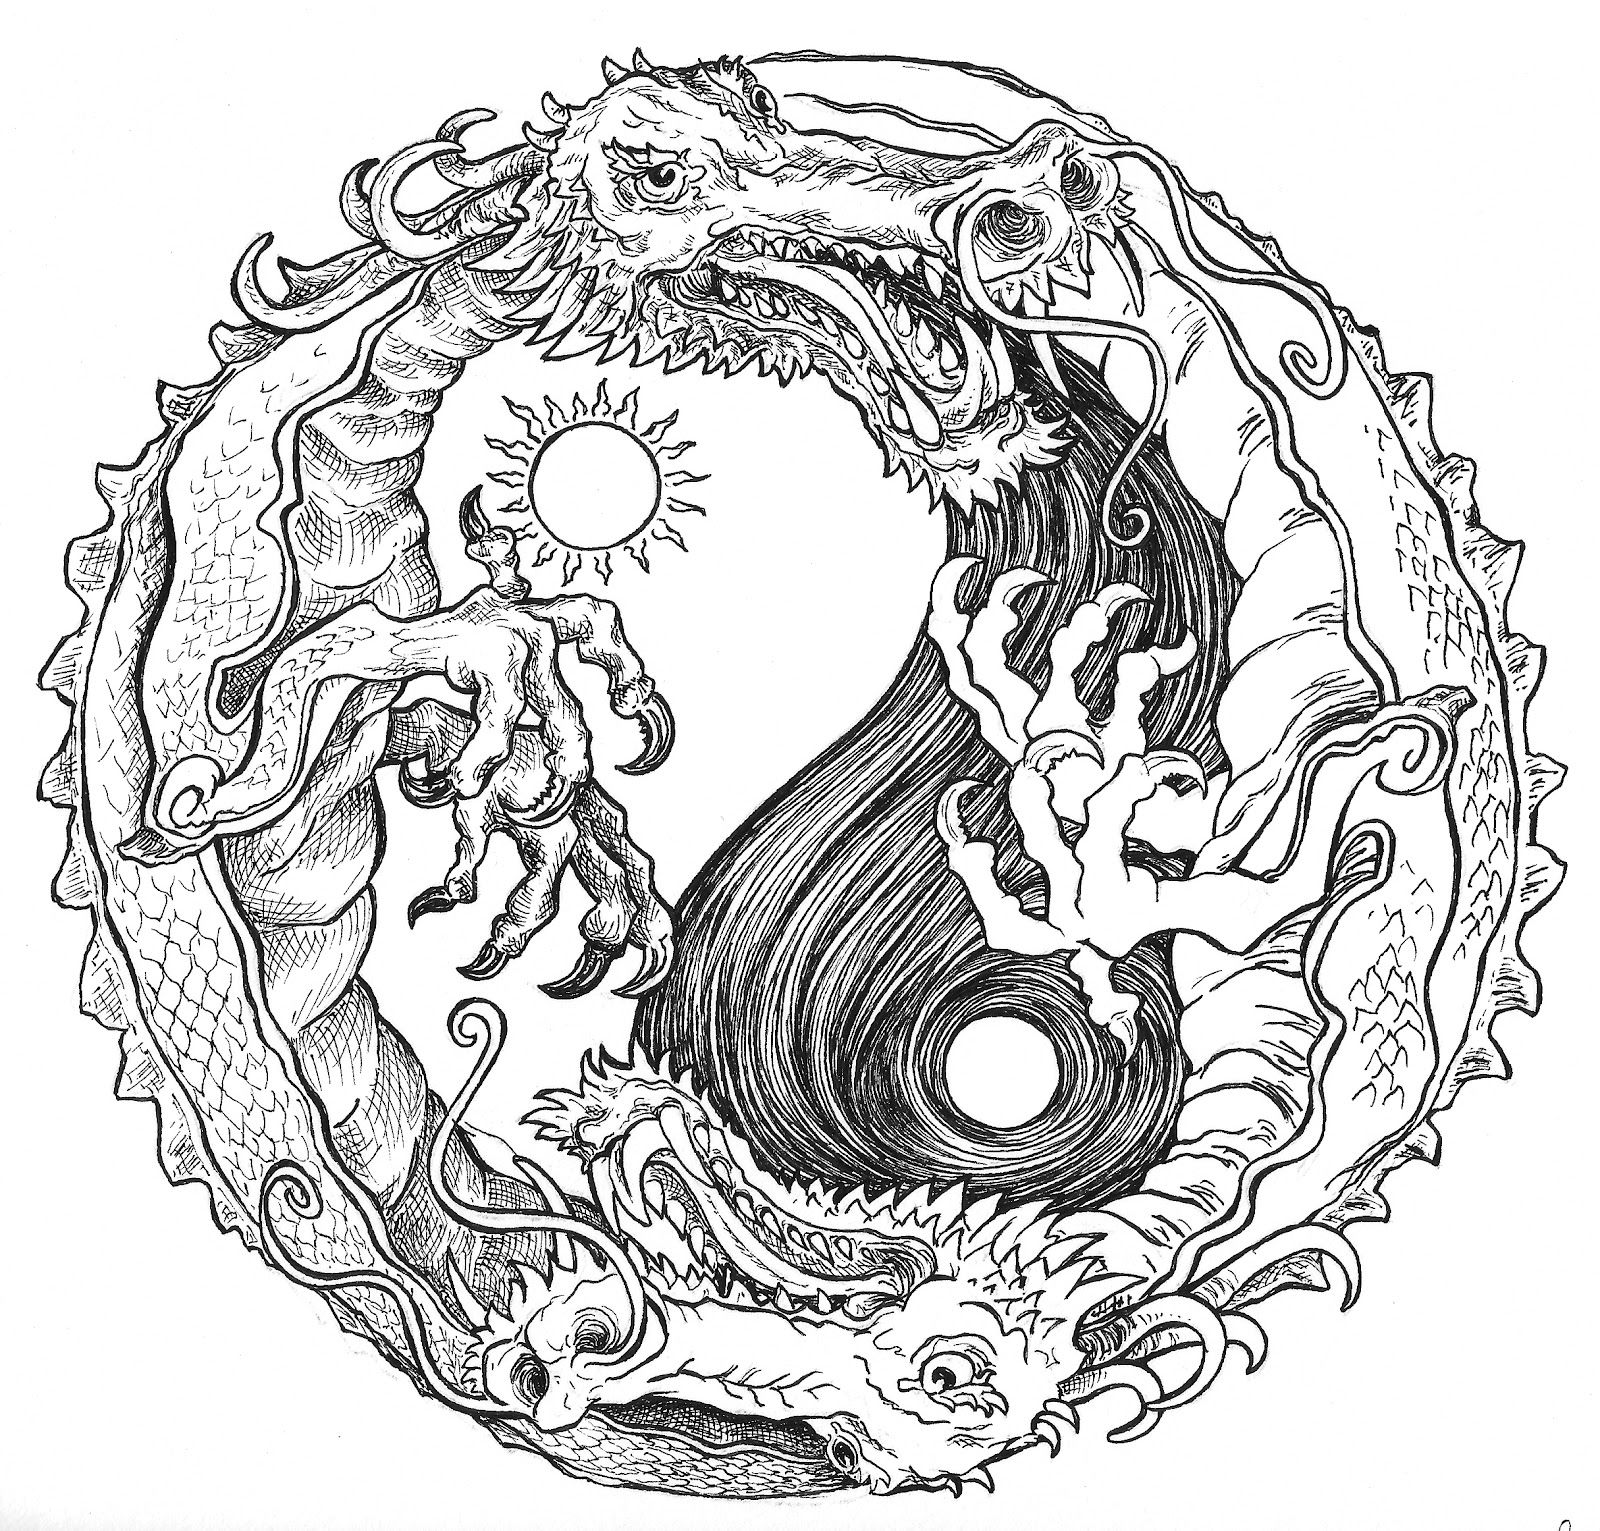 Sun And Moon Dragon Yin Yang Coloring Pages Colouring Adult Detailed